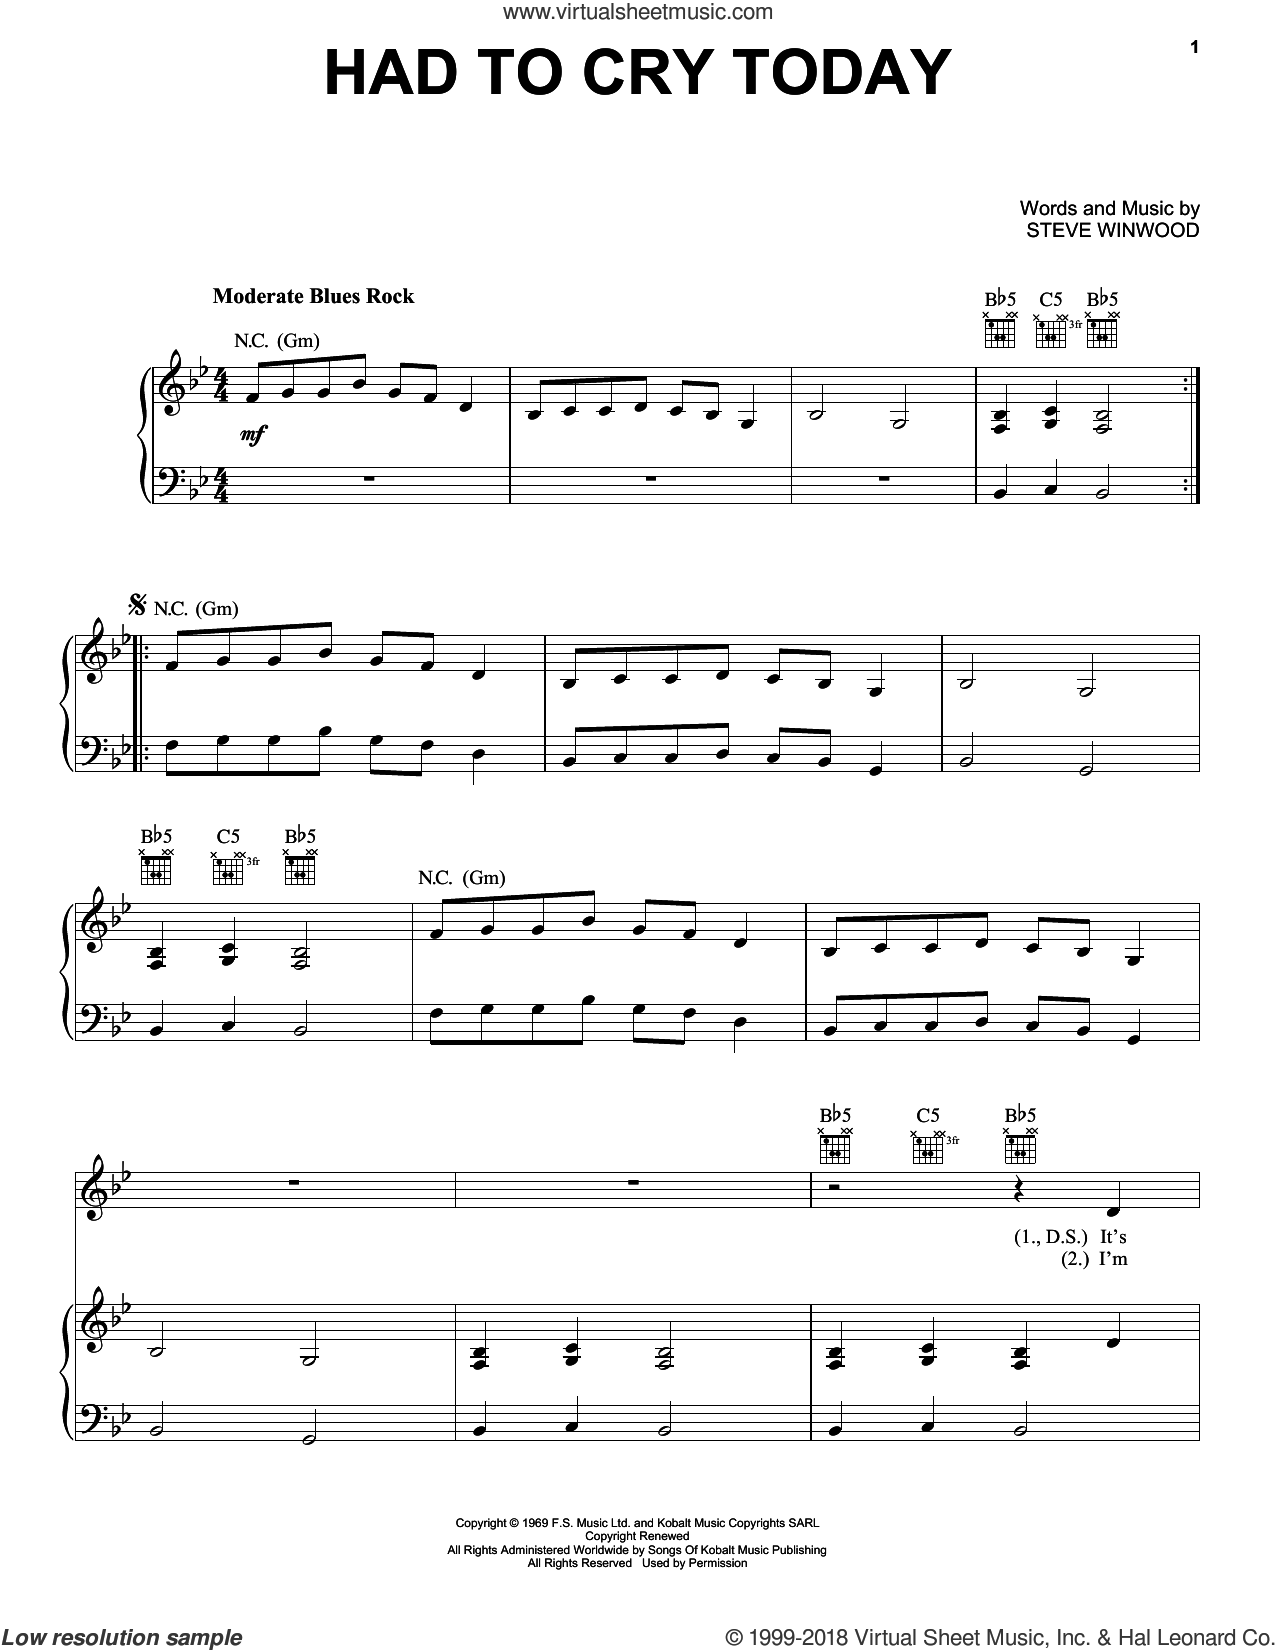 Had To Cry Today sheet music for voice, piano or guitar by Eric Clapton and Steve Winwood, intermediate skill level